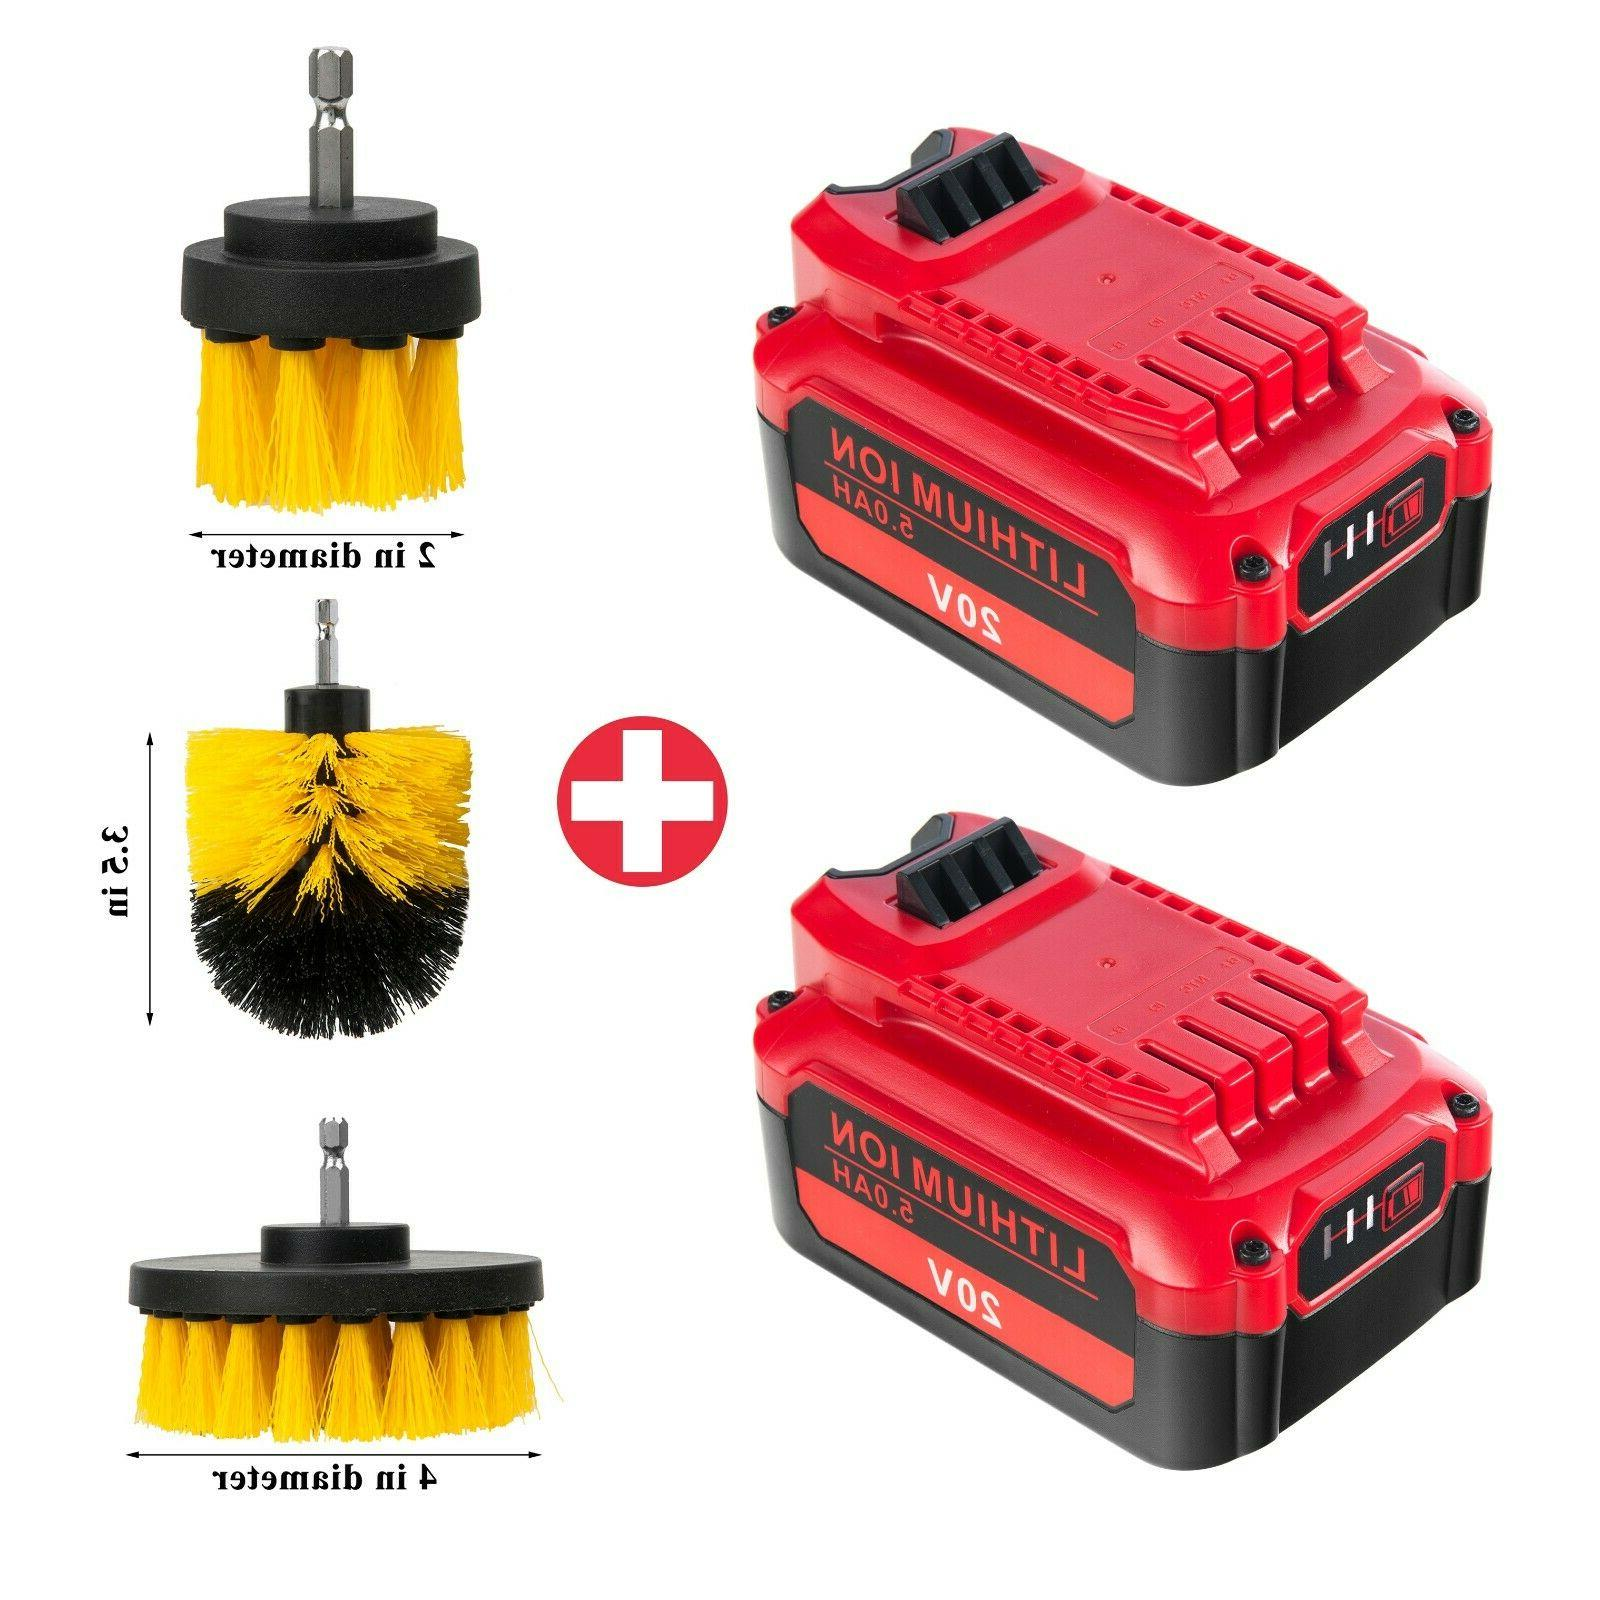 【Upgrade】2 Pack V20 Battery for Craftsman 20V CMCB204